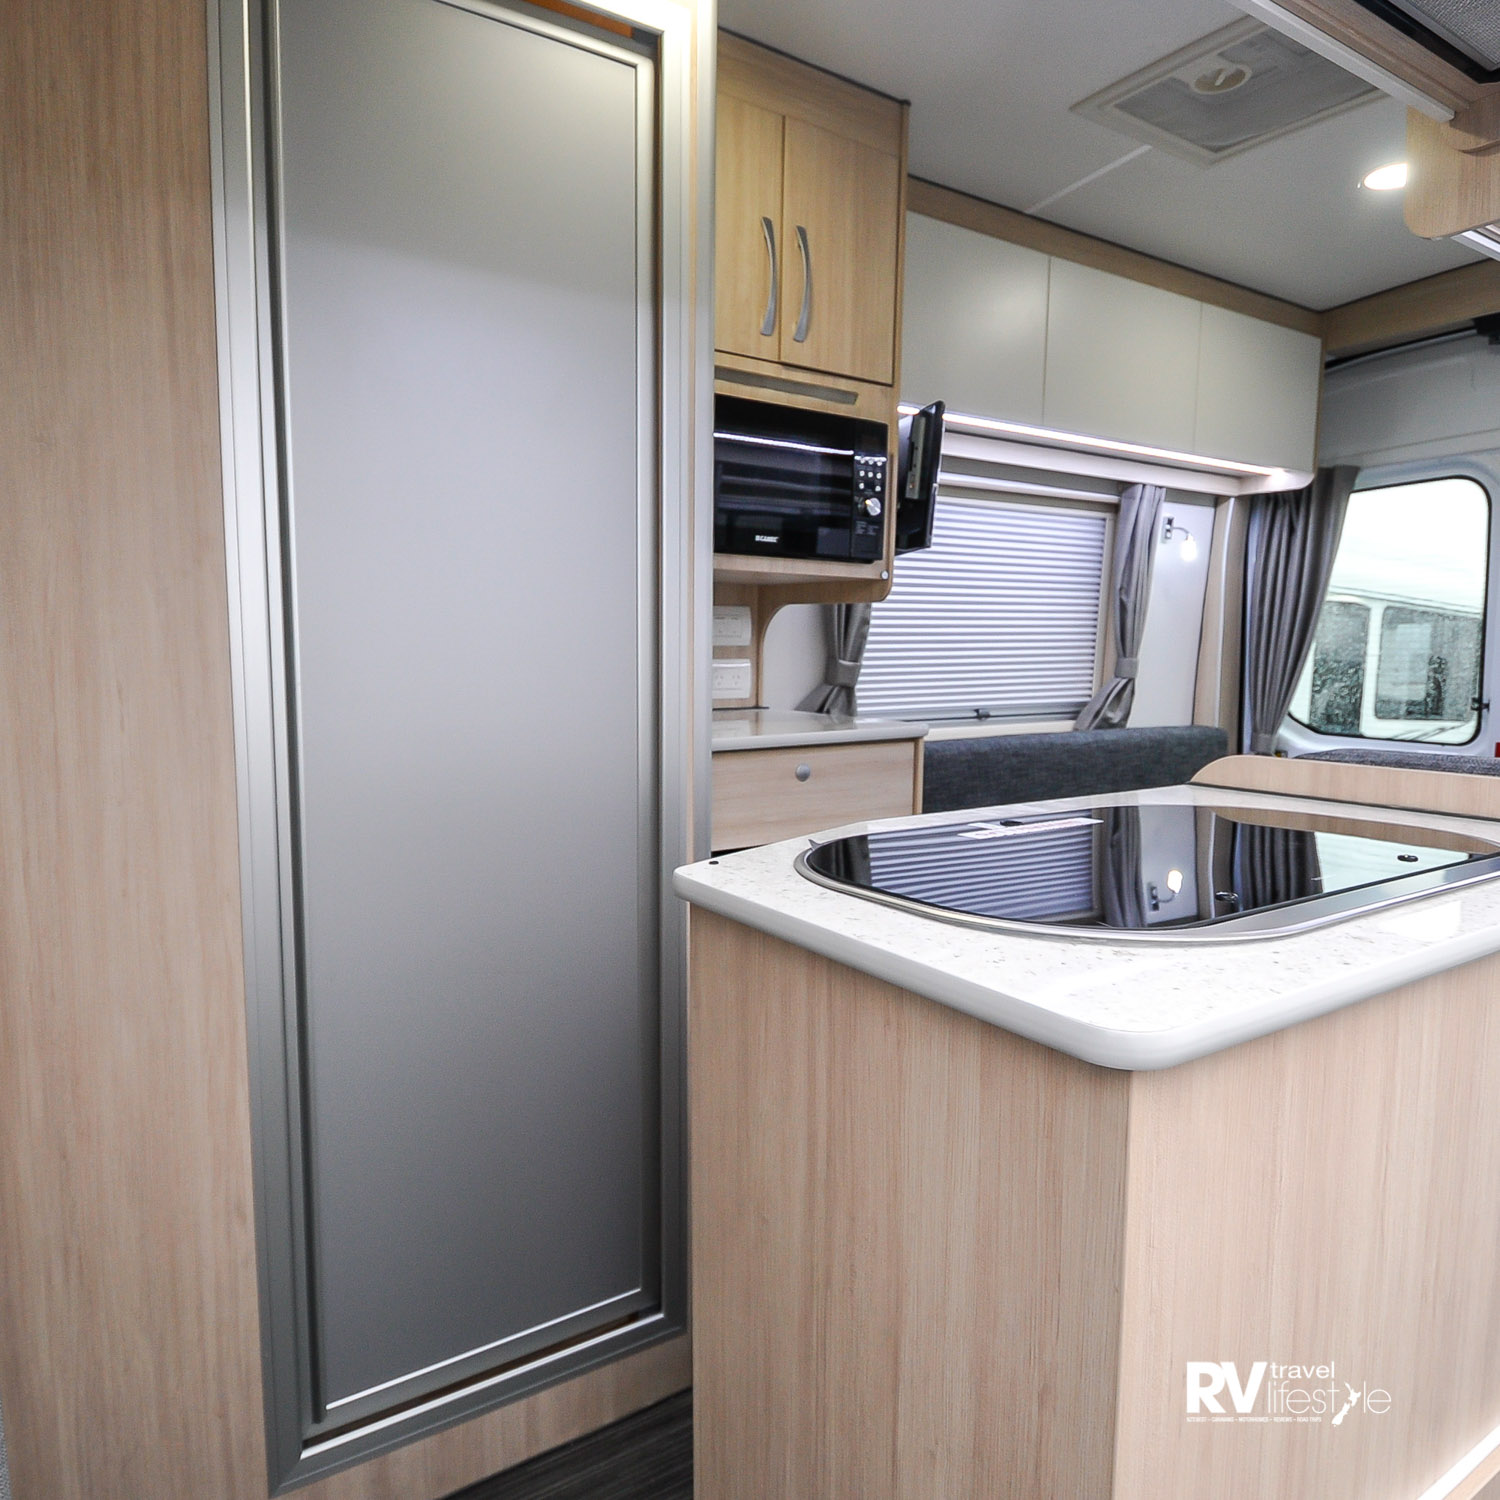 Open the side sliding door and you step up into the camper, kitchen on right, bathroom unit opposite, cab on the left